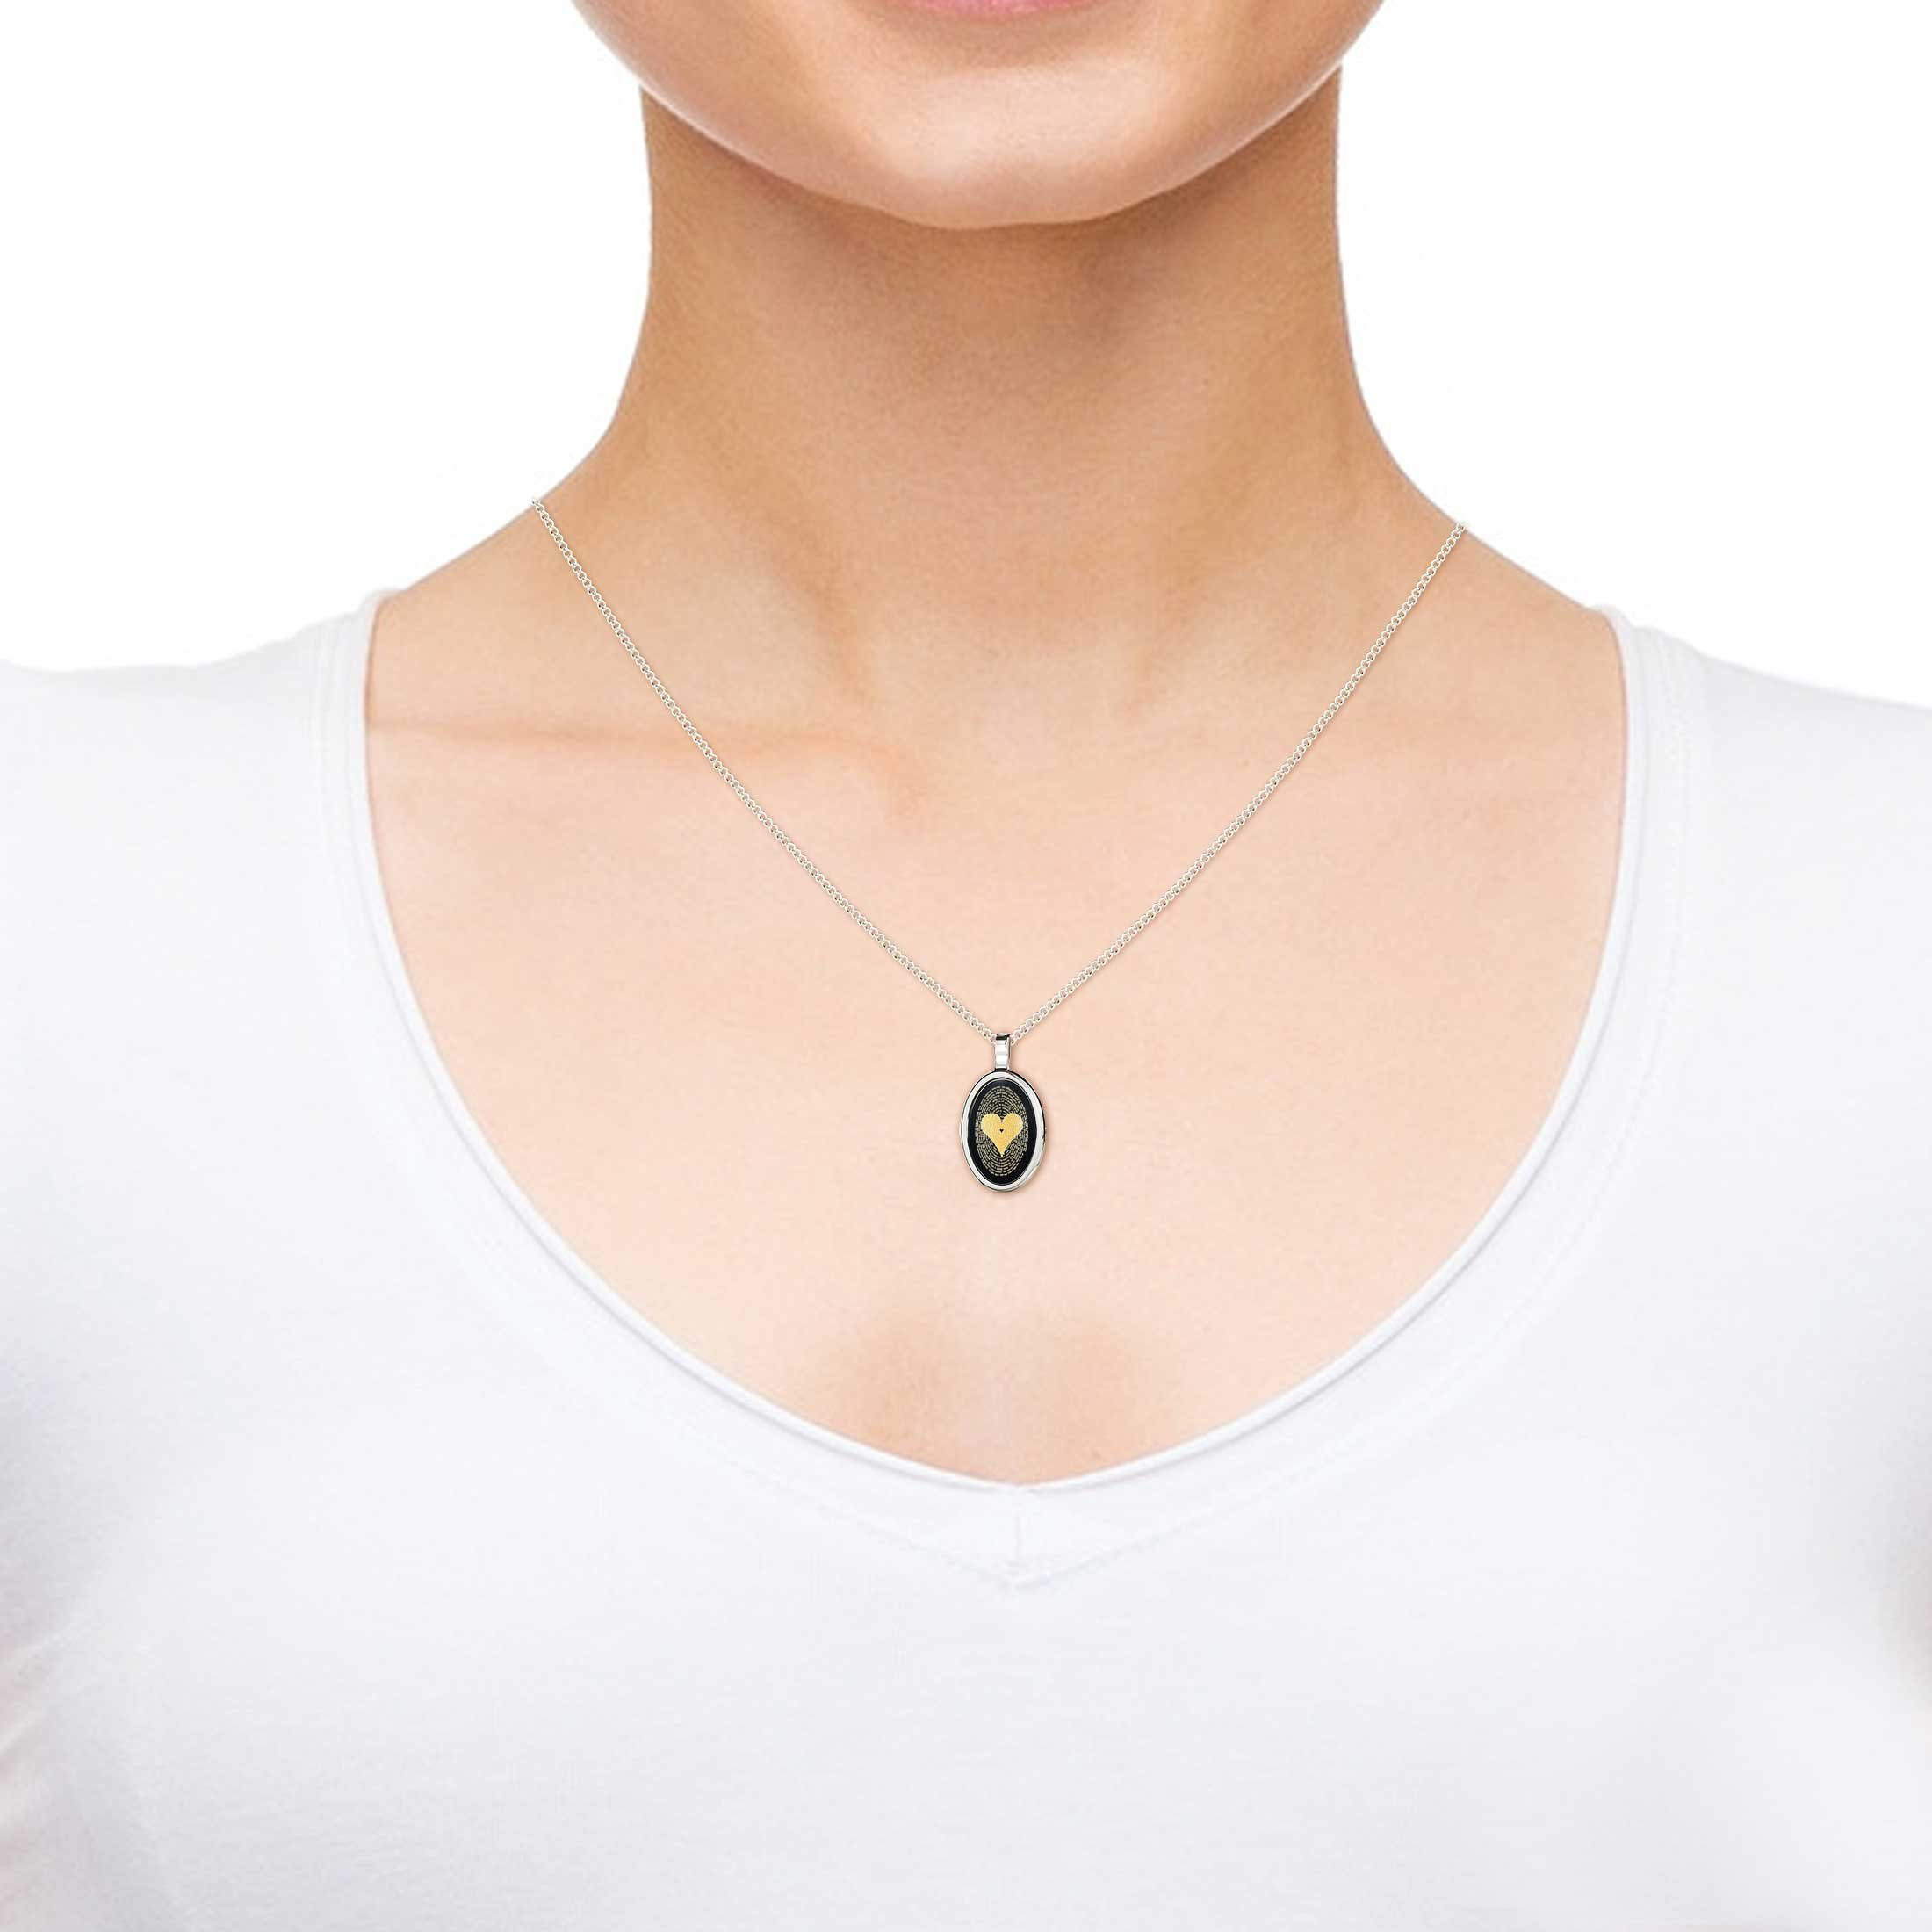 925 Sterling Silver Love Necklace Inscribed with I Love You in 120 Languages on Onyx Pendant, 18'' Chain by Nano Jewelry (Image #5)